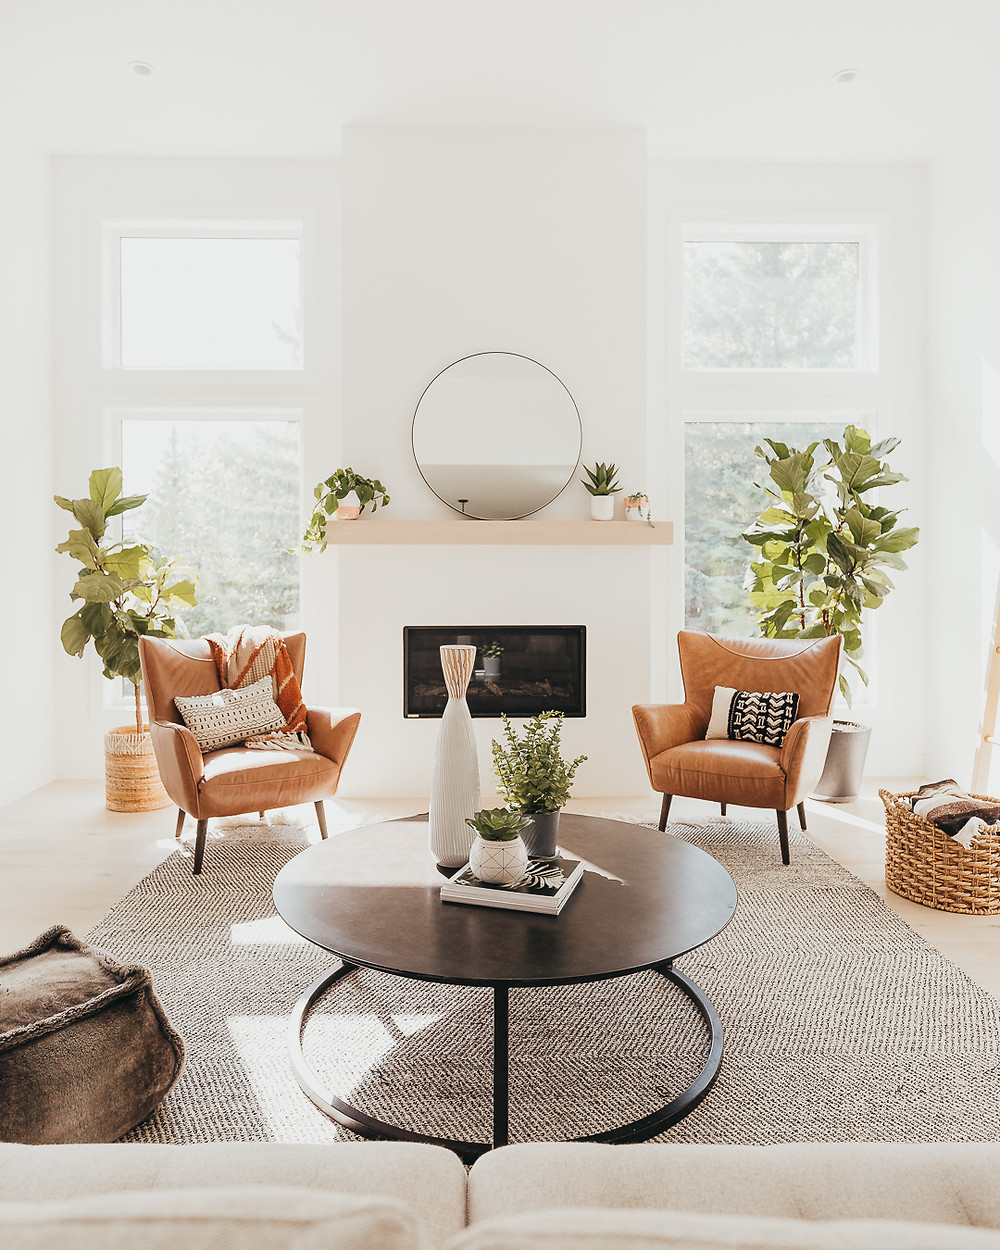 A white Scandinavian living room features light wood floors with a wool rug, light grey sofa, brown fur pouf, two brown leather chairs with pillows, two fiddle leaf fig plants in front of large windows, a metal round coffee table, a wicker basket holding a throw, and a linear white fireplace with a light wood mantel holding a round mirror and some plants.